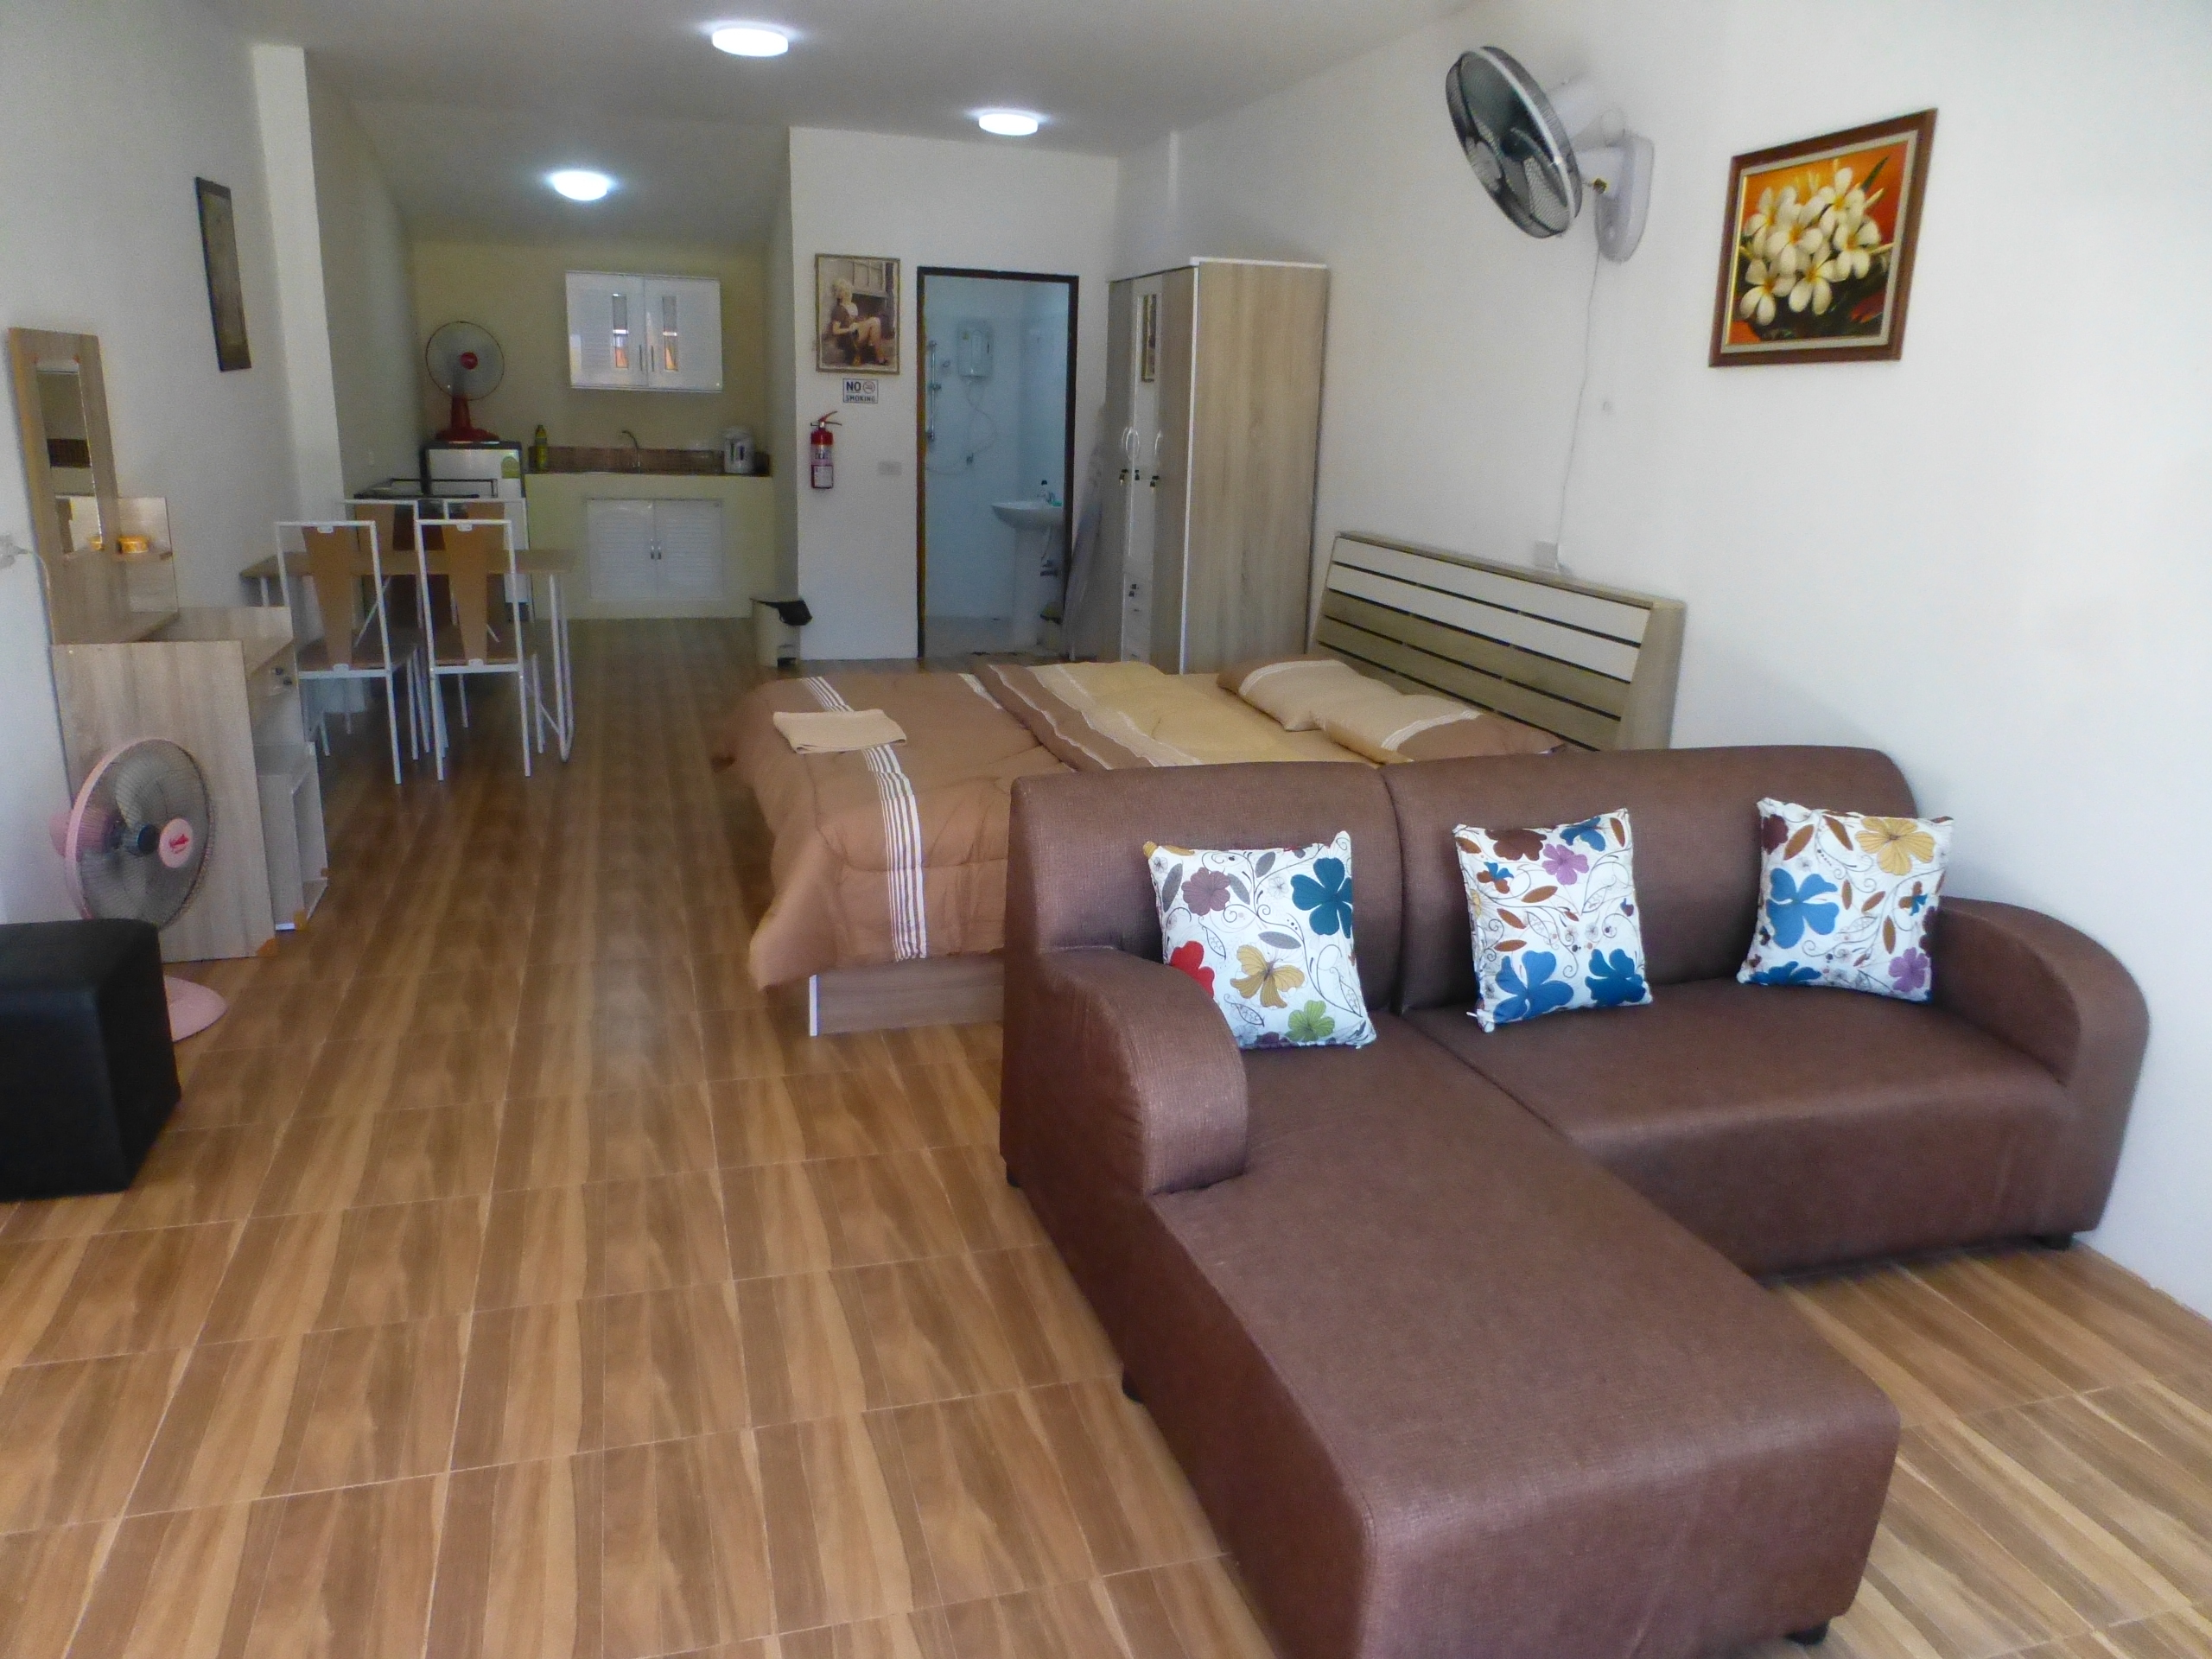 UdonThani Apartments with lots of room to move 399 baht per night  0868 592 986